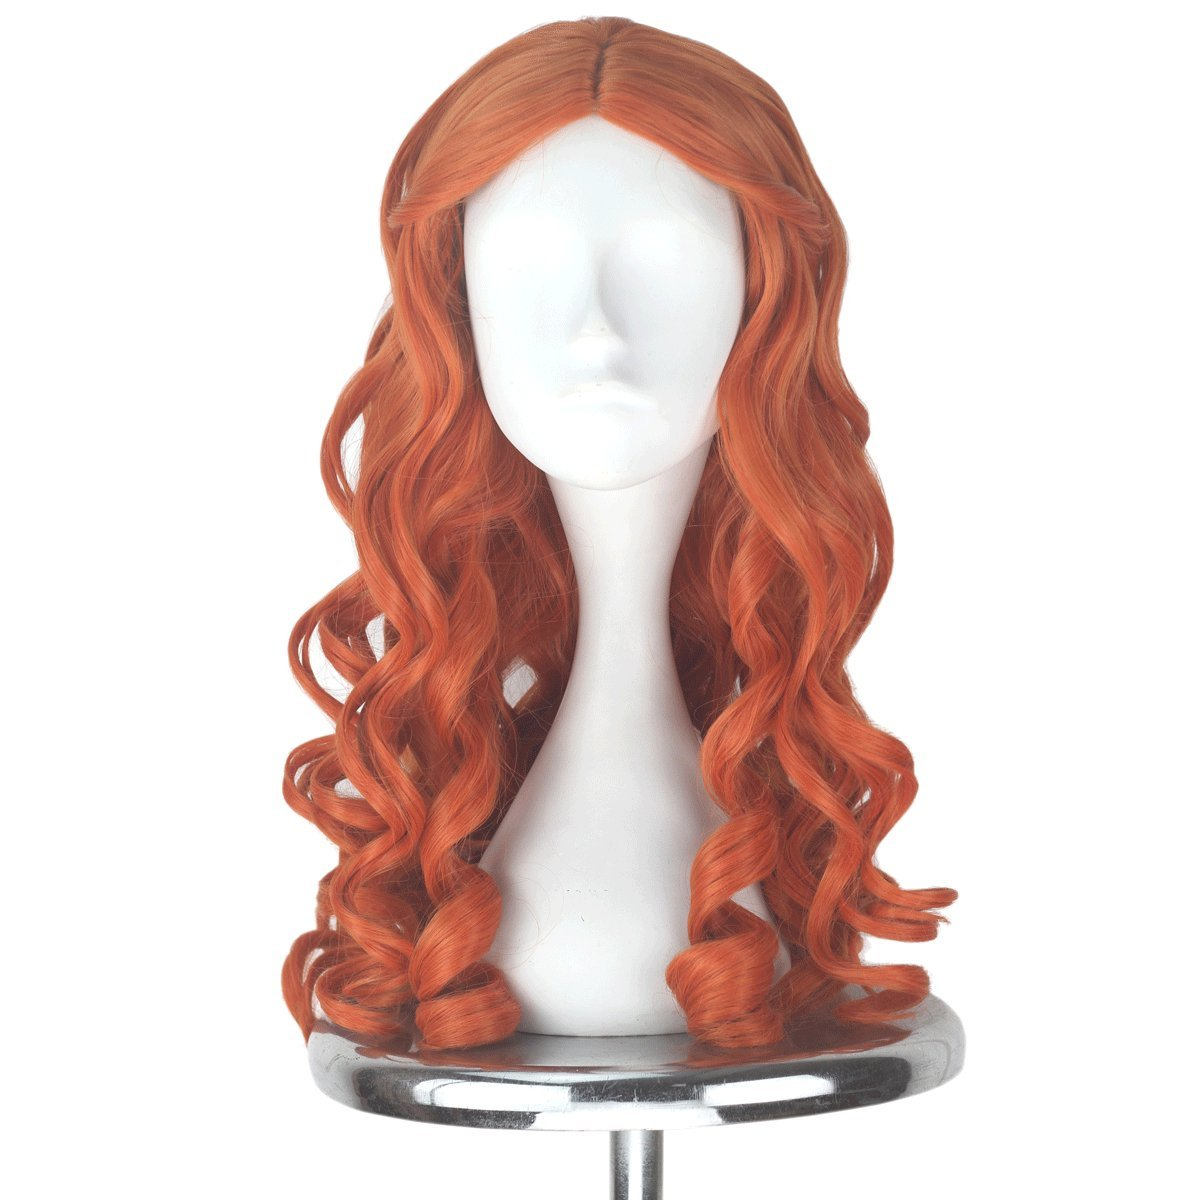 Synthetic Wigs Shop For Cheap Miss U Hair Women Girl Child Adult Synthetic Prestyled Long Wavy Brown Hair Cosplay Costume Wig For Halloween